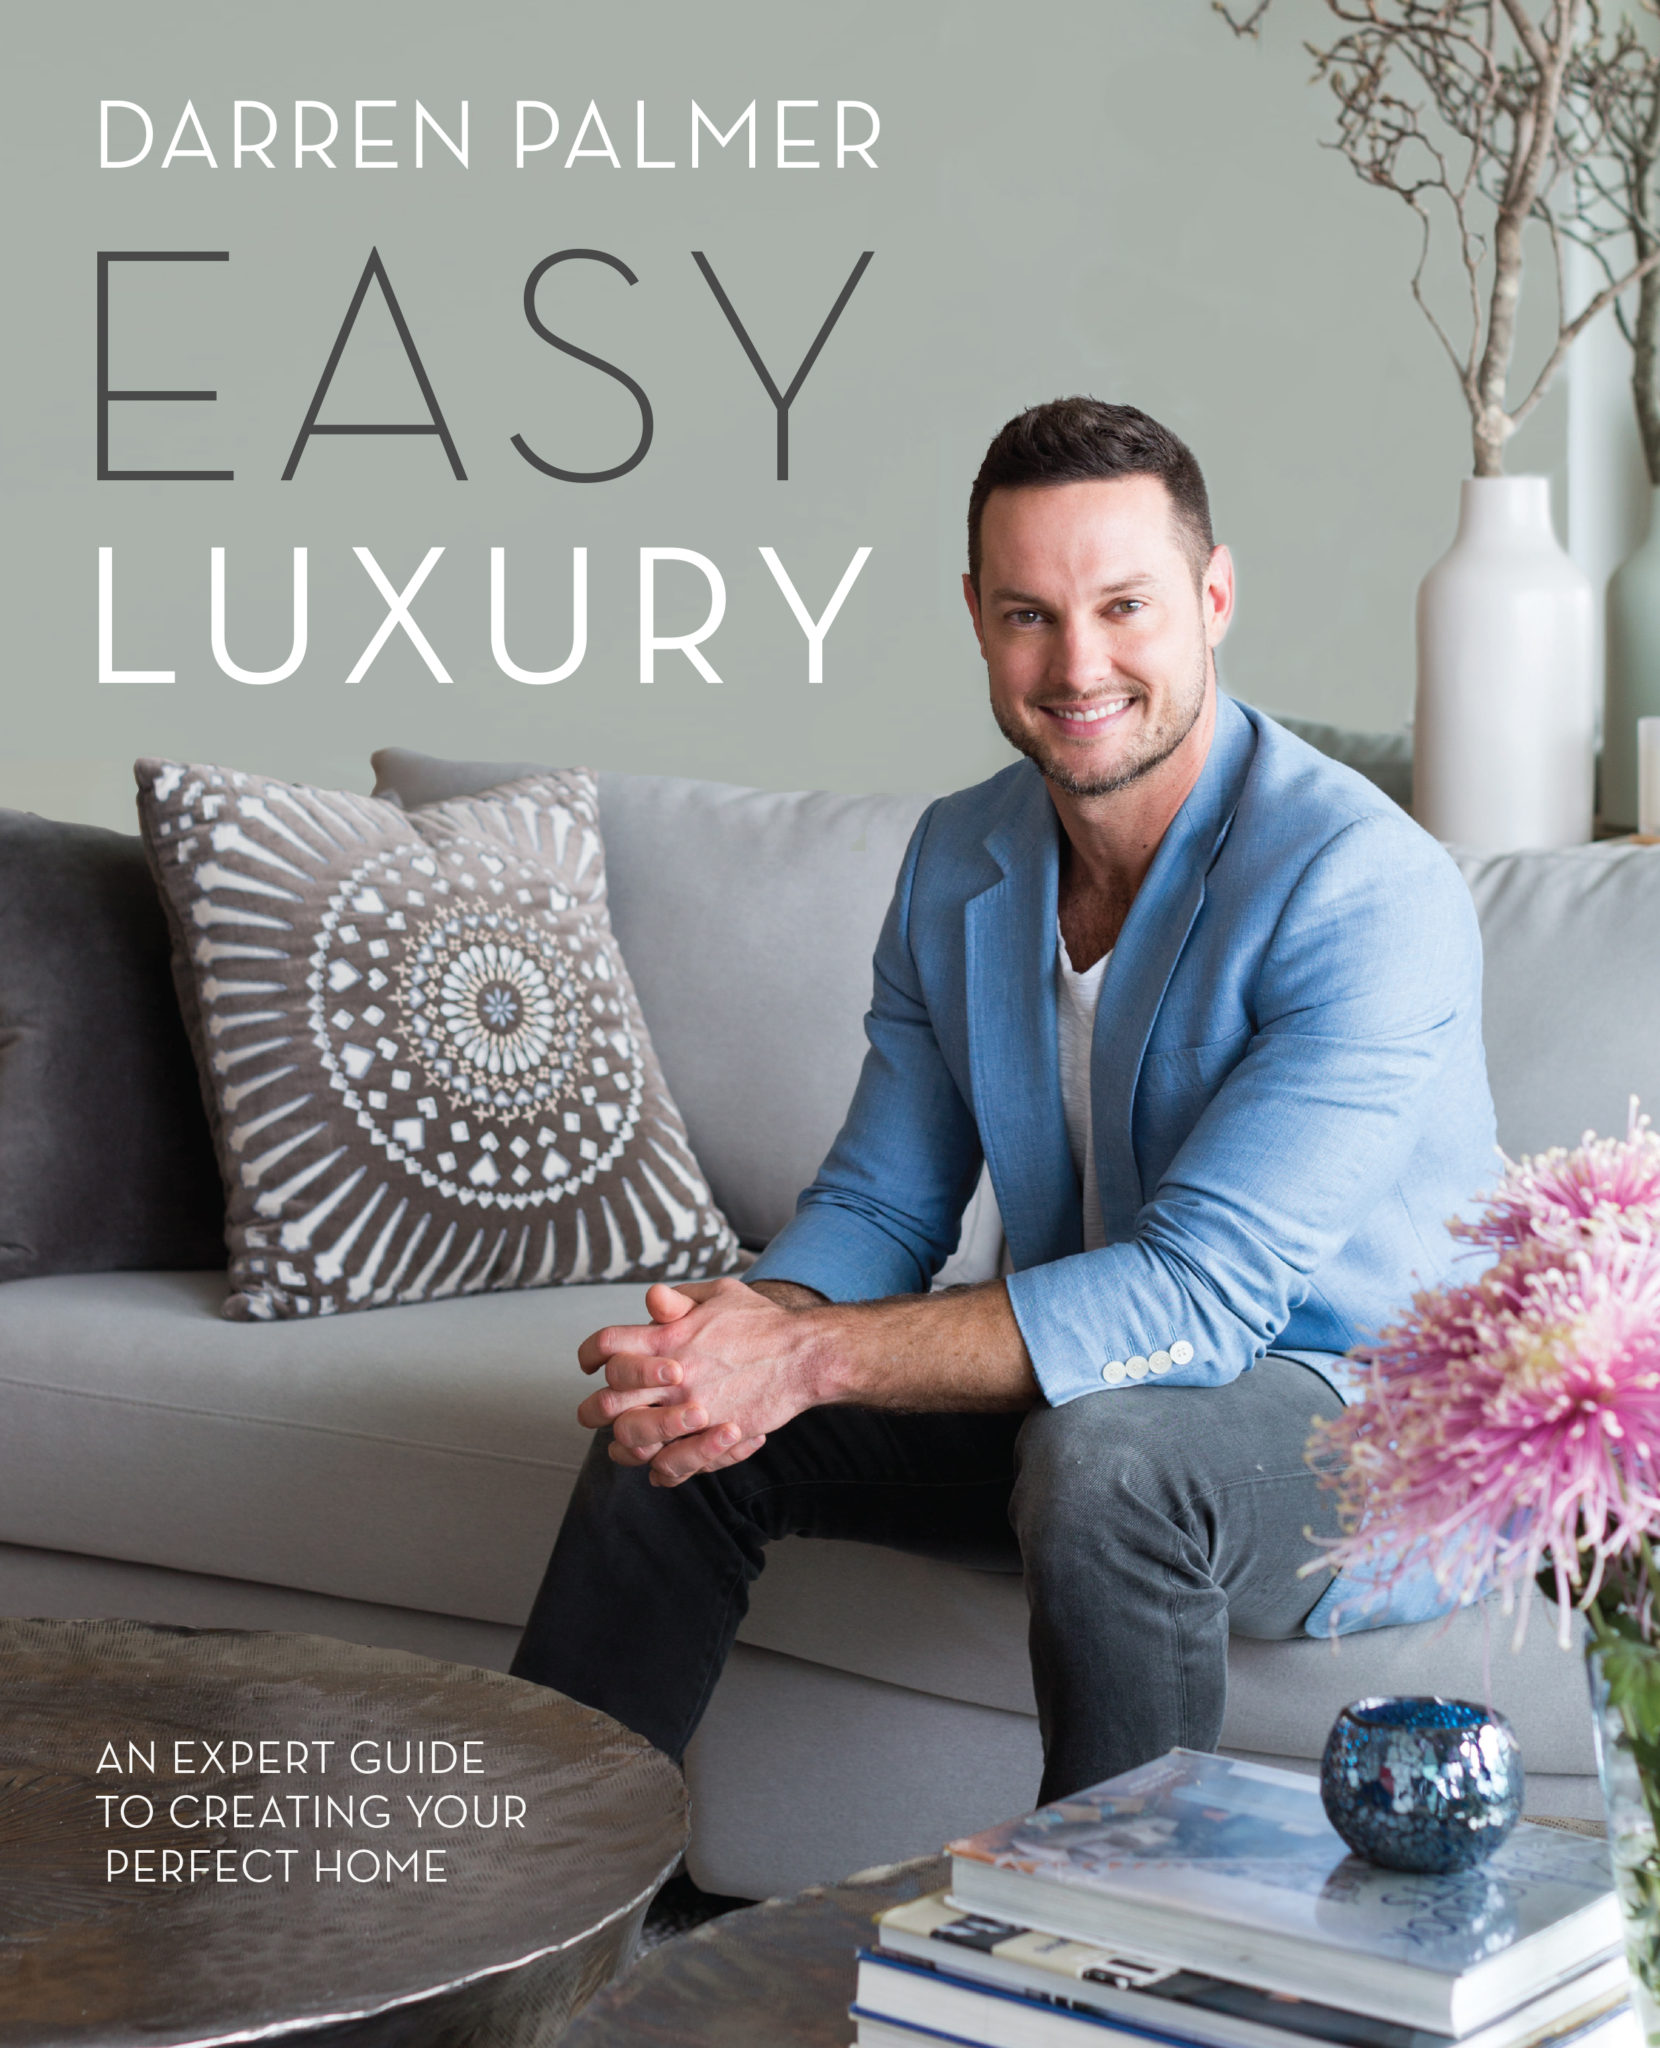 Interview: Darren Palmer on his new book, Easy Luxury - The